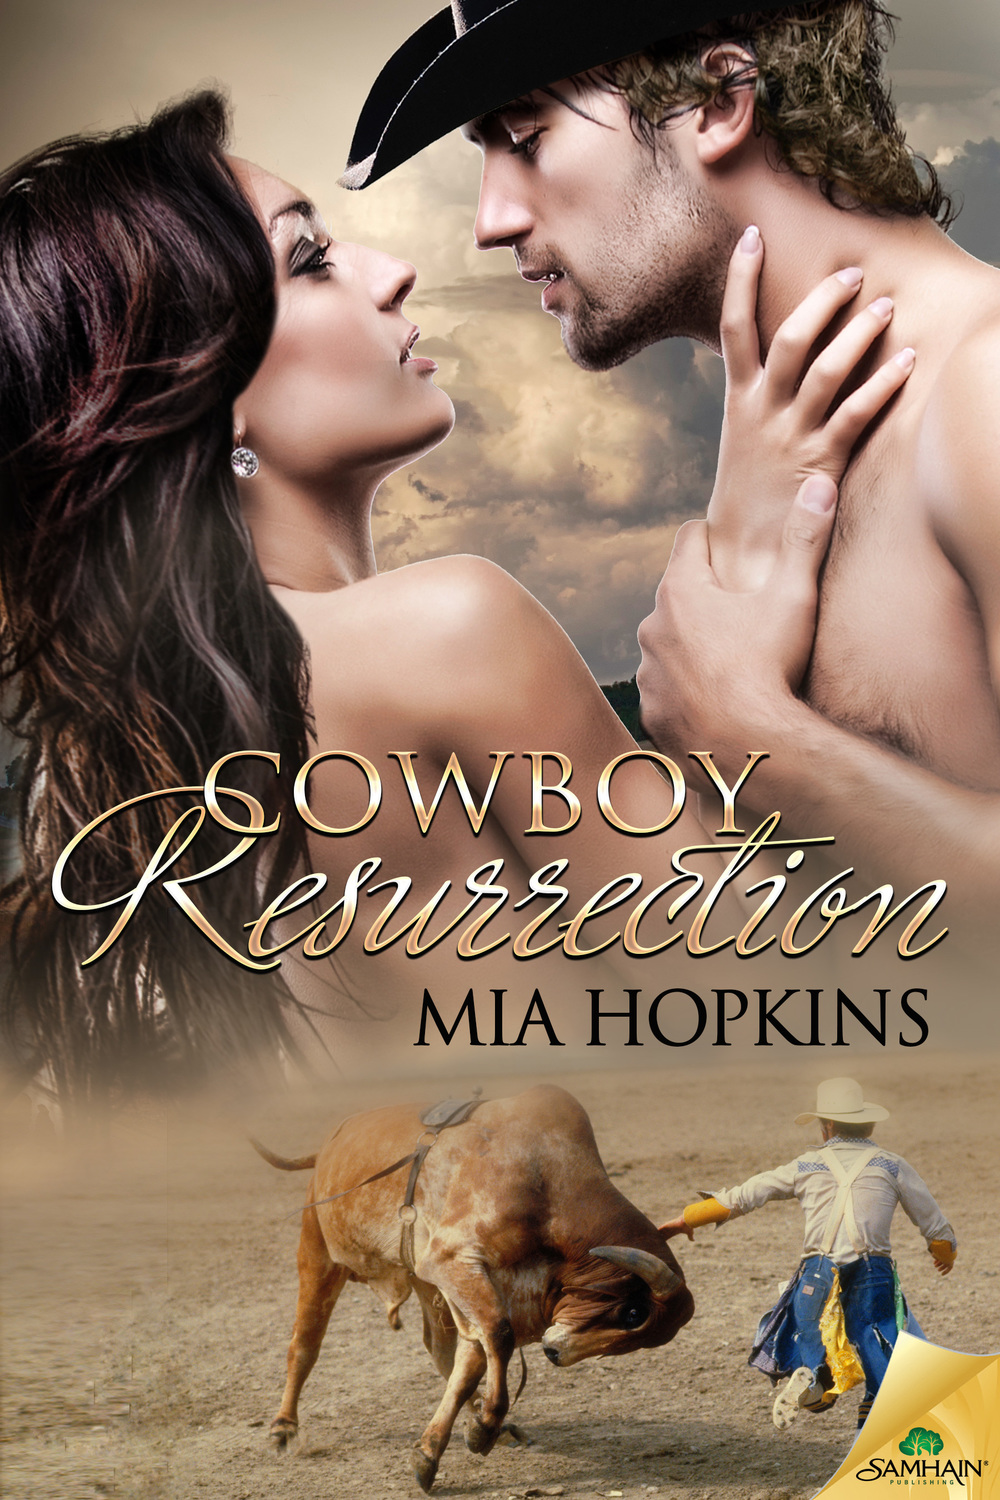 cowboy resurrection final cover.JPG